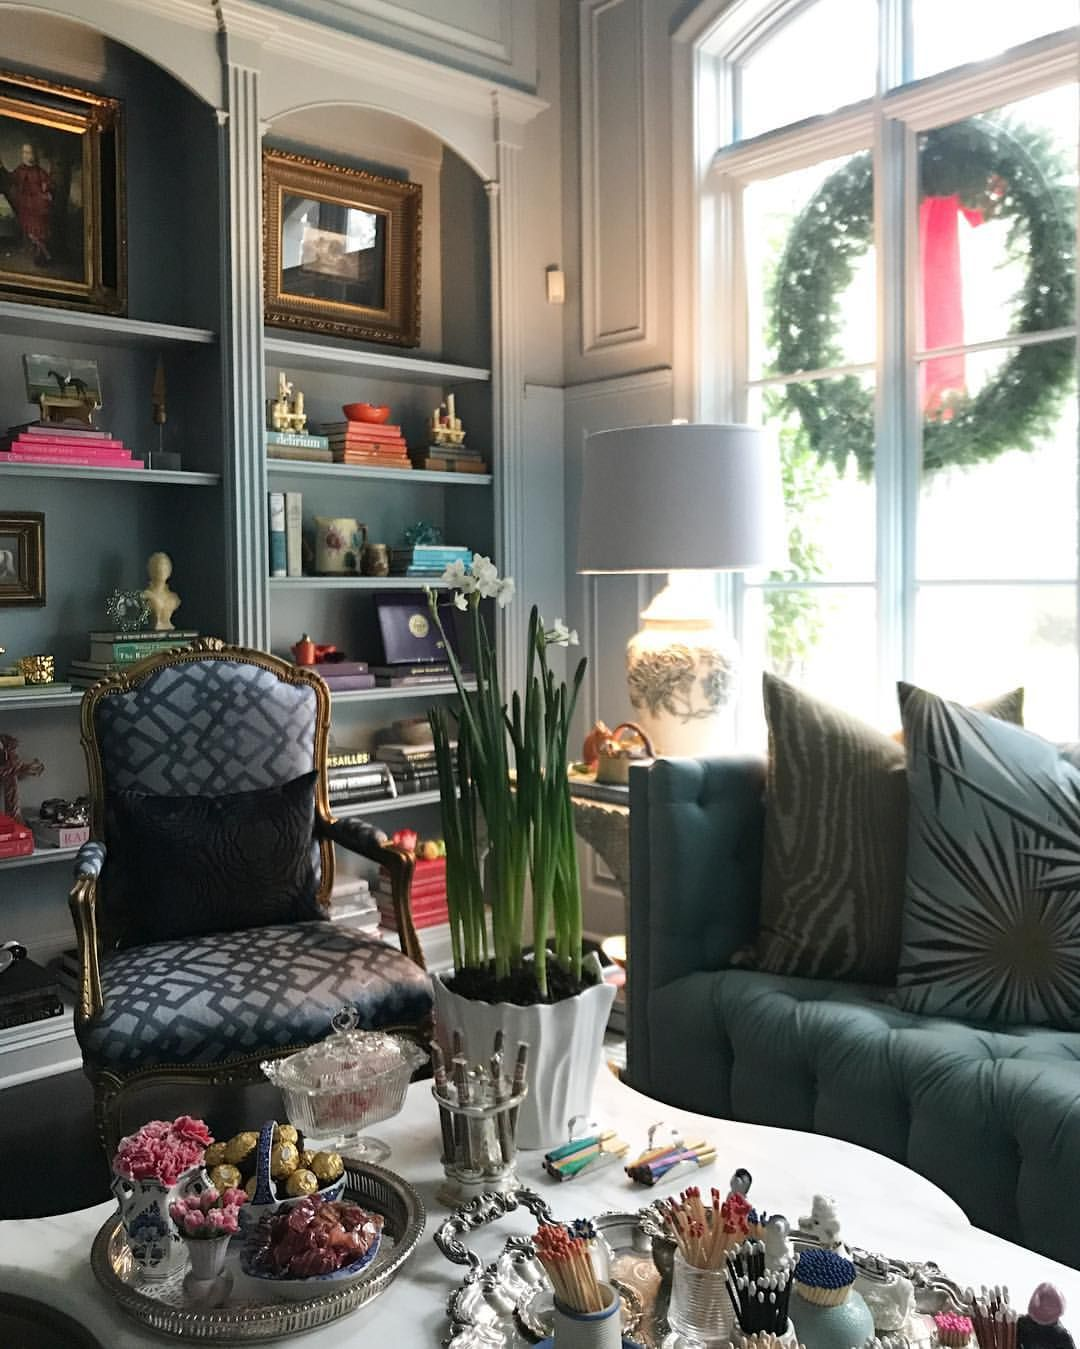 118 Likes 6 Comments Boxwood Interiors Boxwoodinteriors On Instagram Snuggly Sunday December Mornings Eightdaysuntilchristma With Images Interior Home Decor Decor